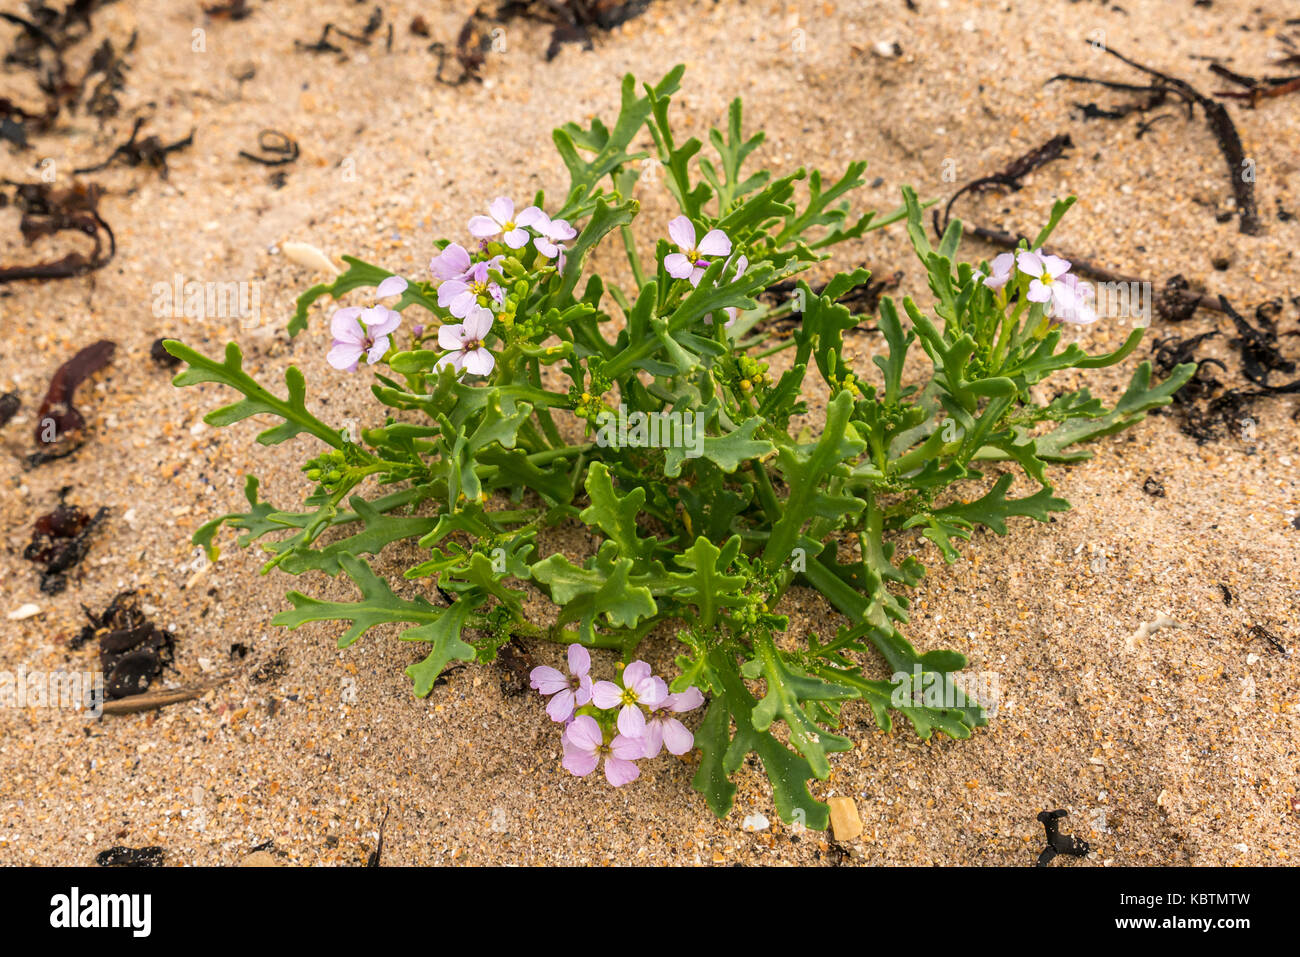 small-purple-flowers-growing-in-sand-on-